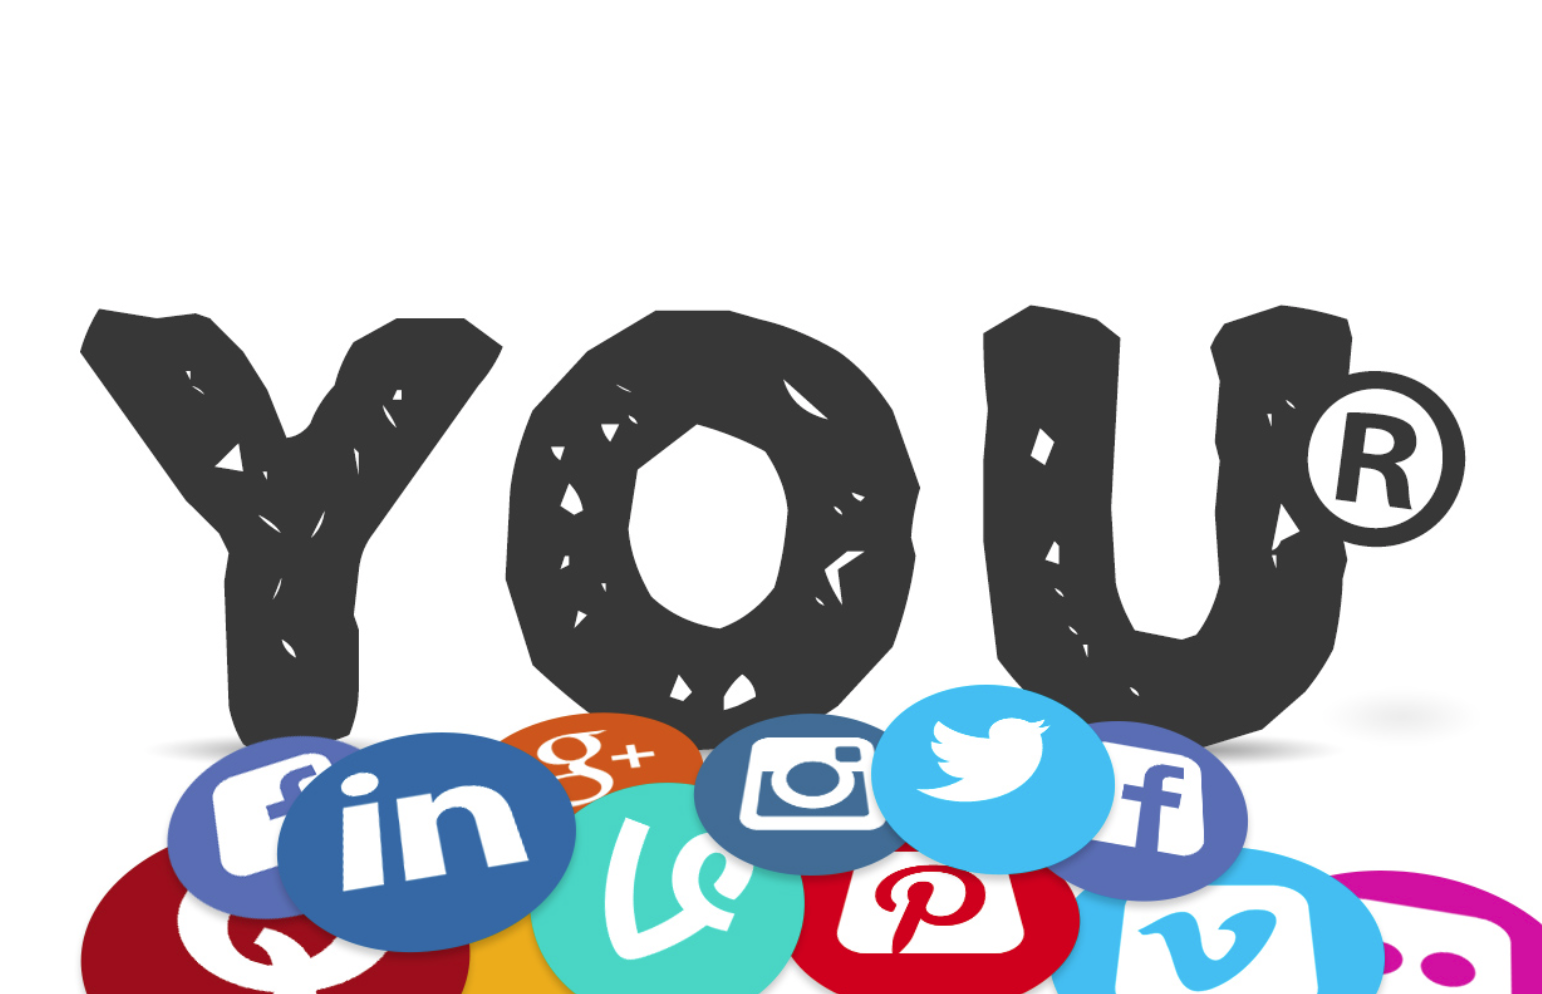 You image with registered trademark symbol surrounded by social media logos